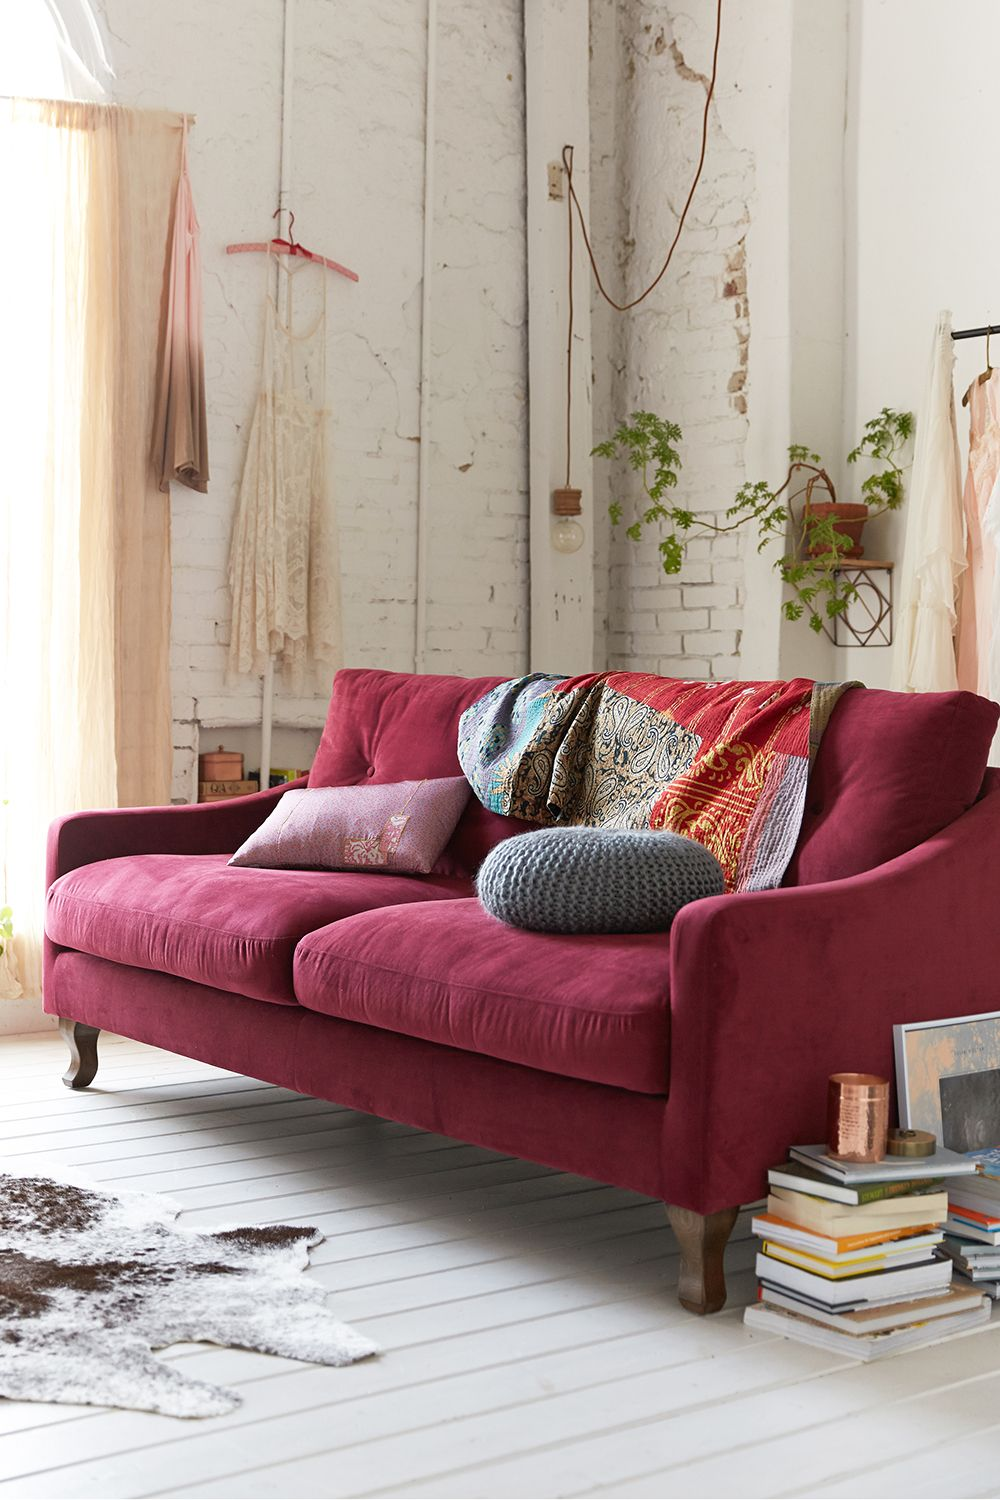 Apartment Urban Outfitters Home Decor Home Living Room